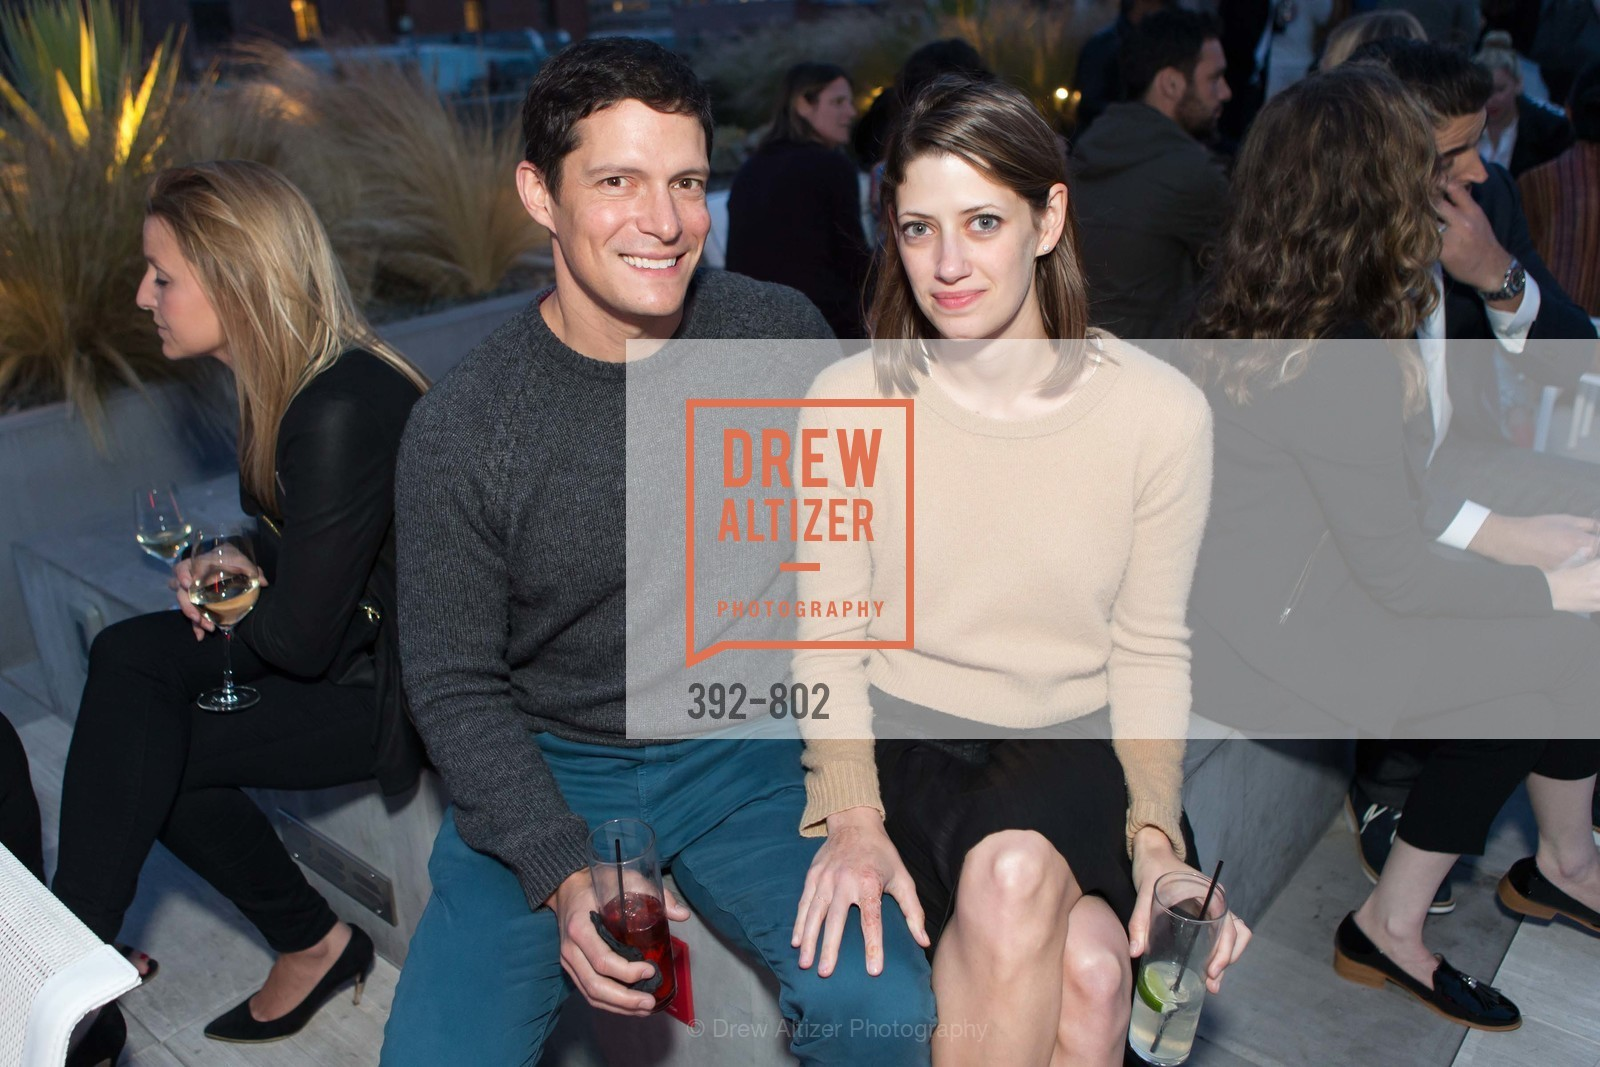 Noah Yago, Alyza Edelstein, MR PORTER Celebrate The San Francisco Issue of The Journal, US, April 24th, 2015,Drew Altizer, Drew Altizer Photography, full-service agency, private events, San Francisco photographer, photographer california